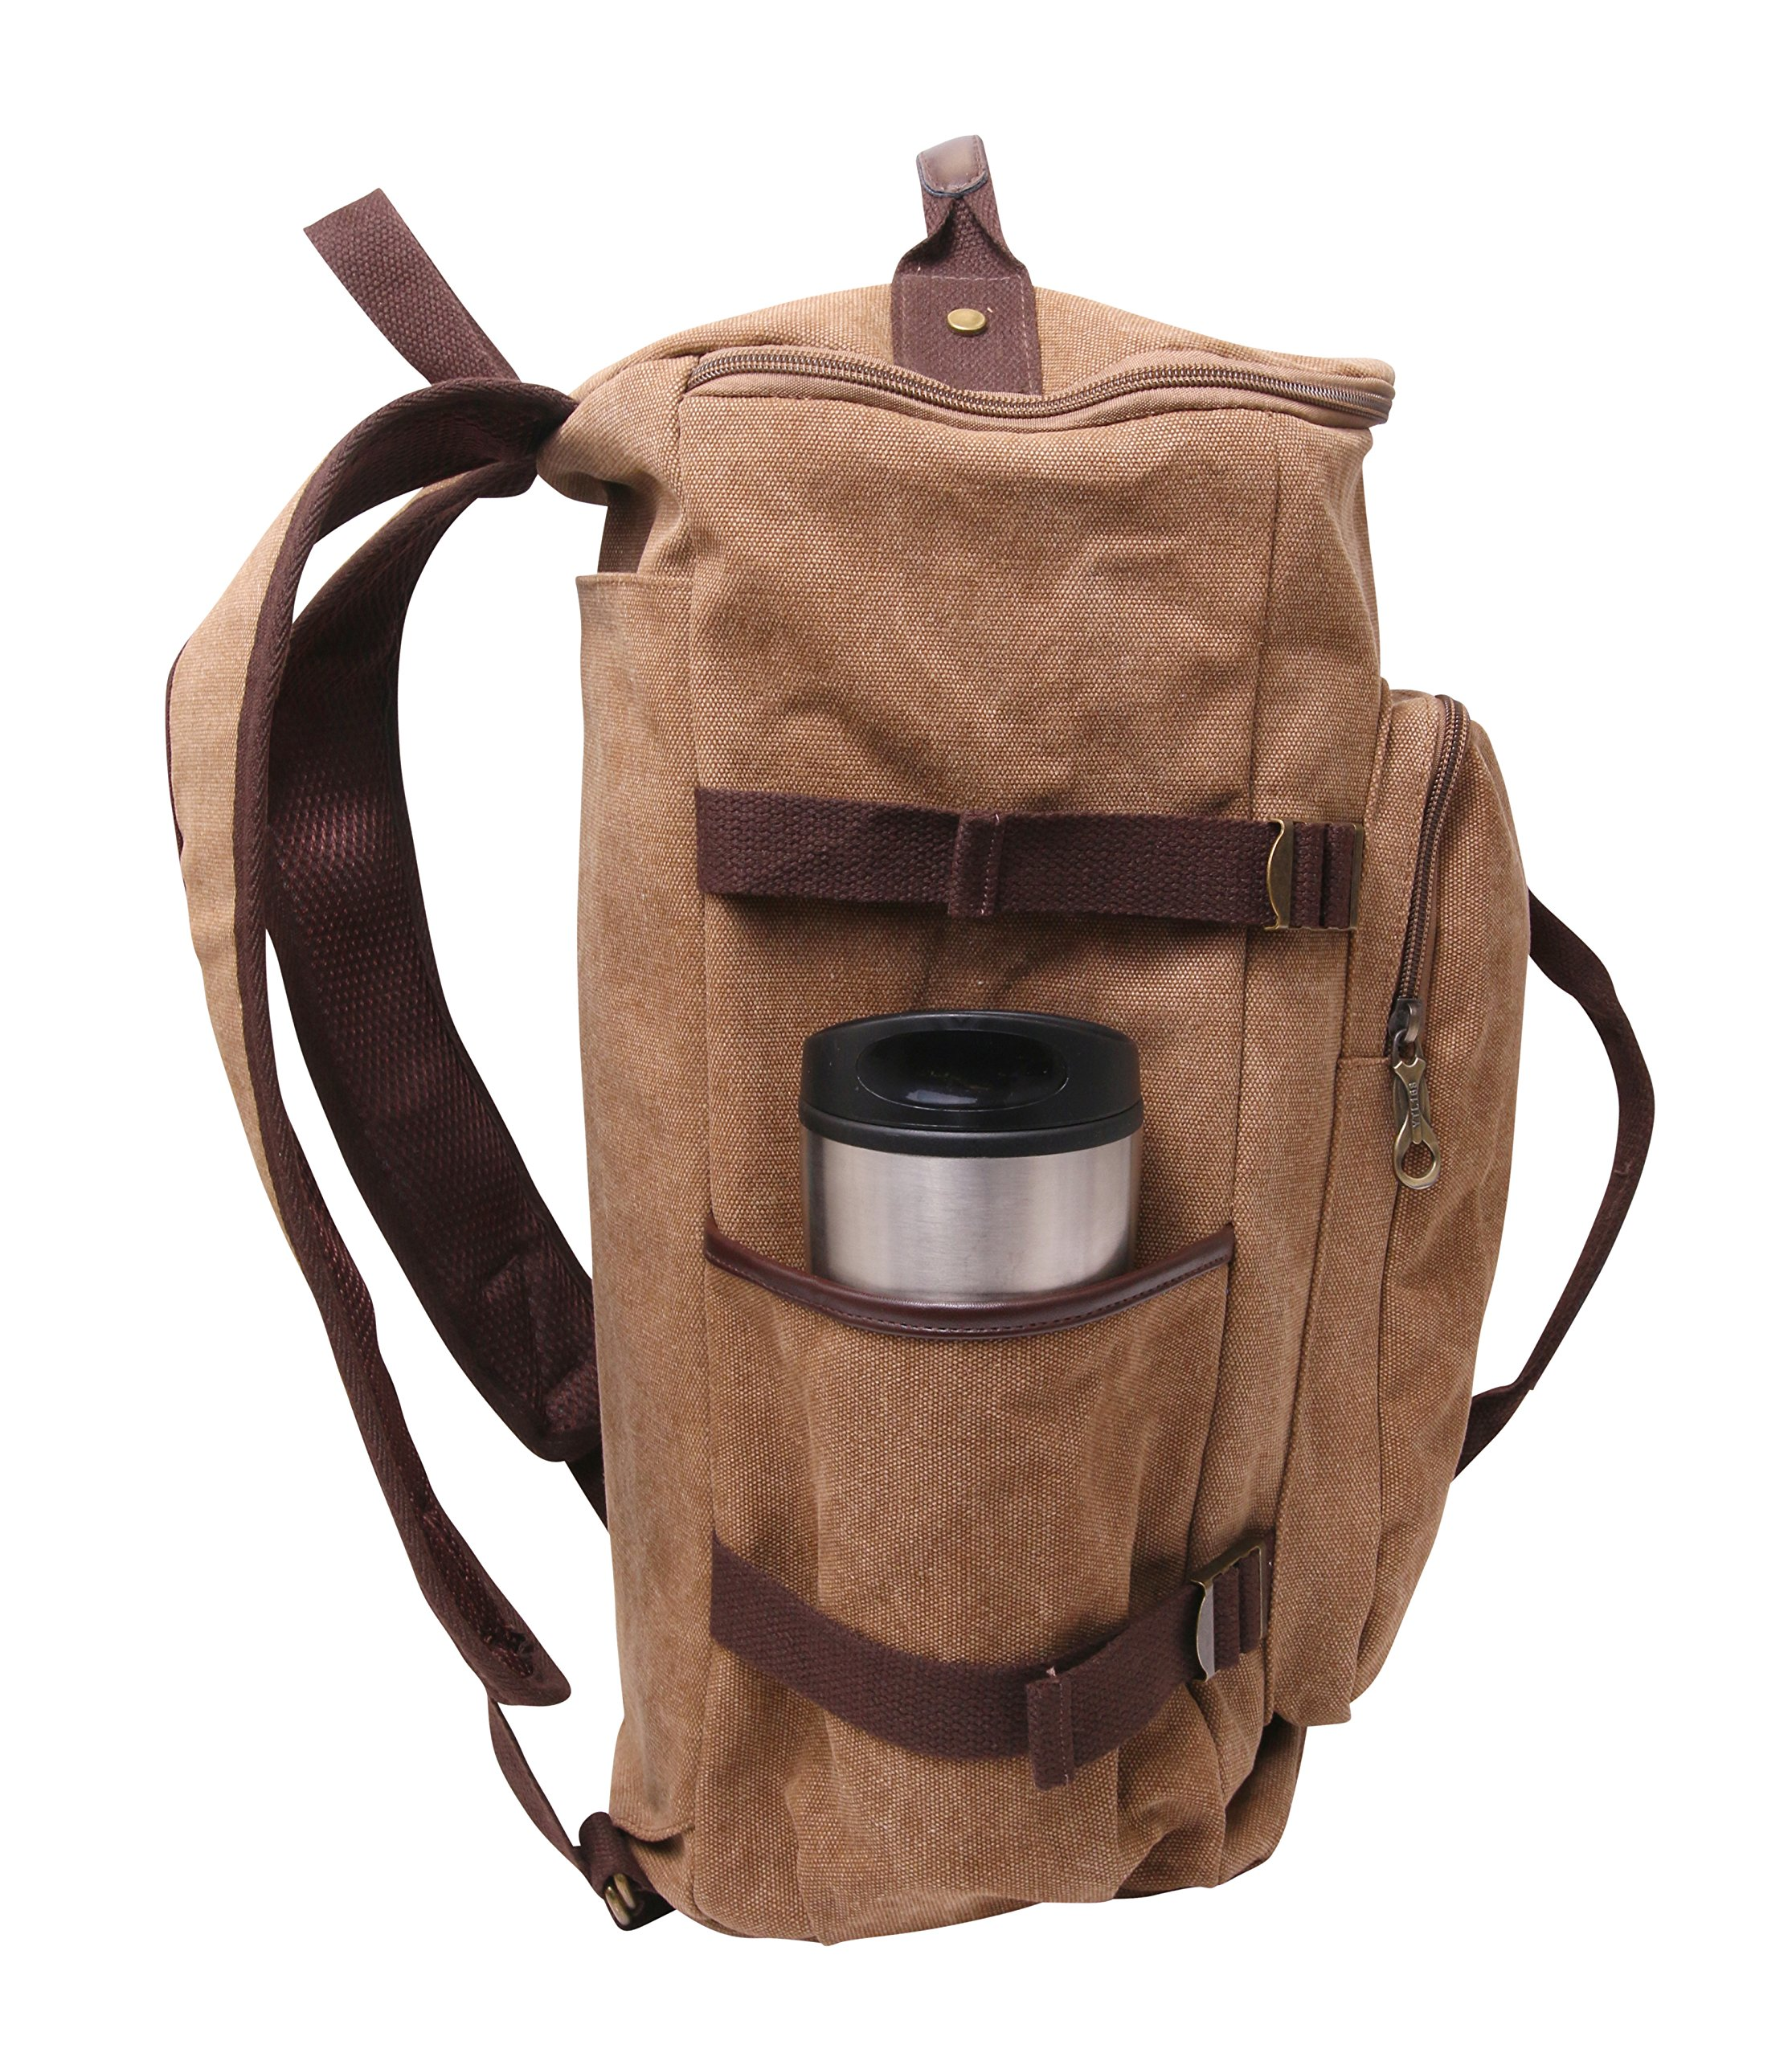 2-in-1 Travel Duffel Bag – Canvas Travel Backpack and Luggage Carry-on (Brown) by Skymore Baggage Co.